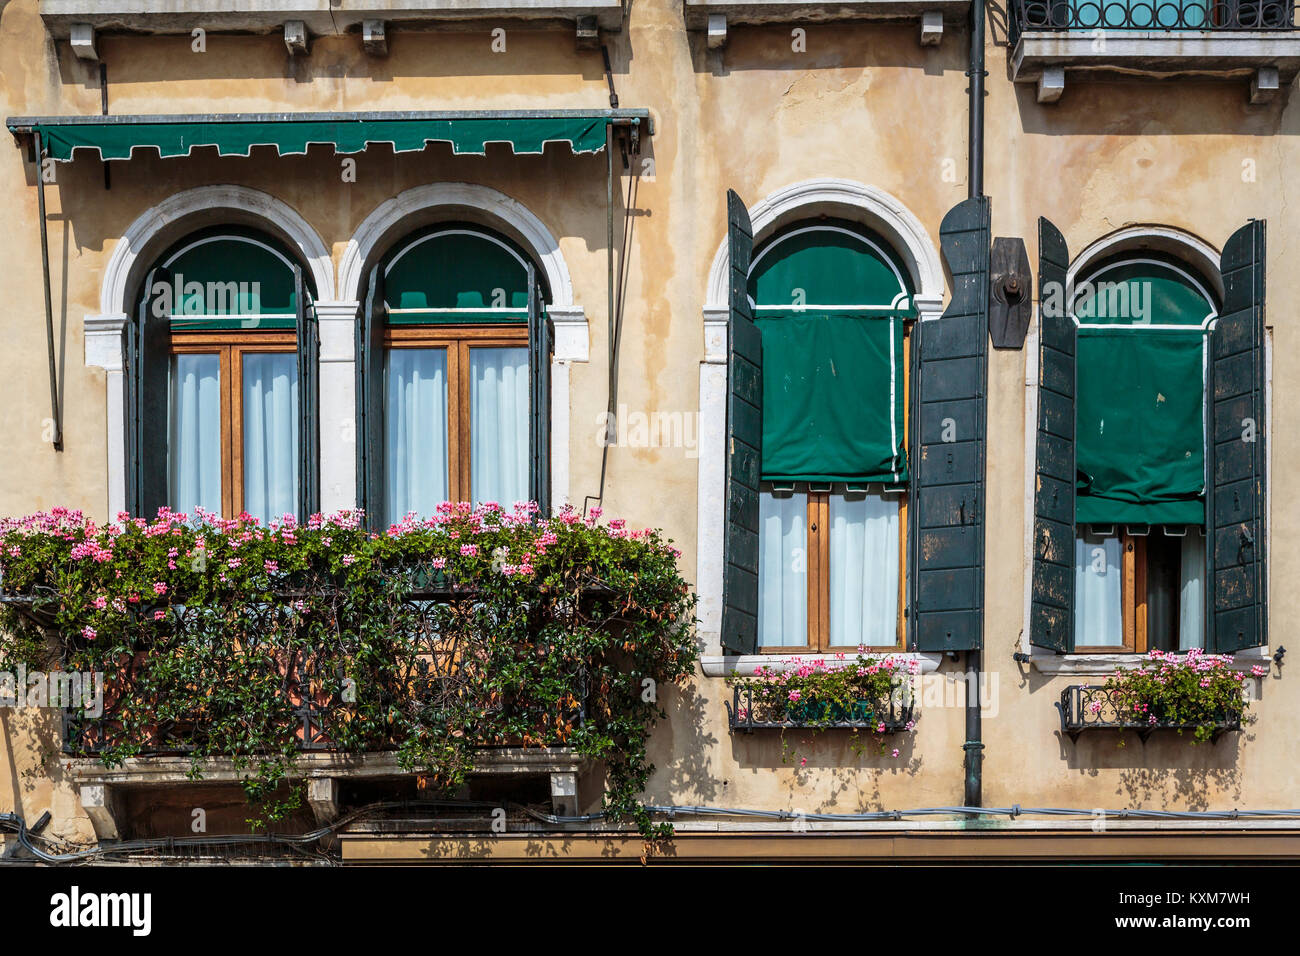 Window boxes and flowers in Veneto, Venice, Italy, Europe. - Stock Image